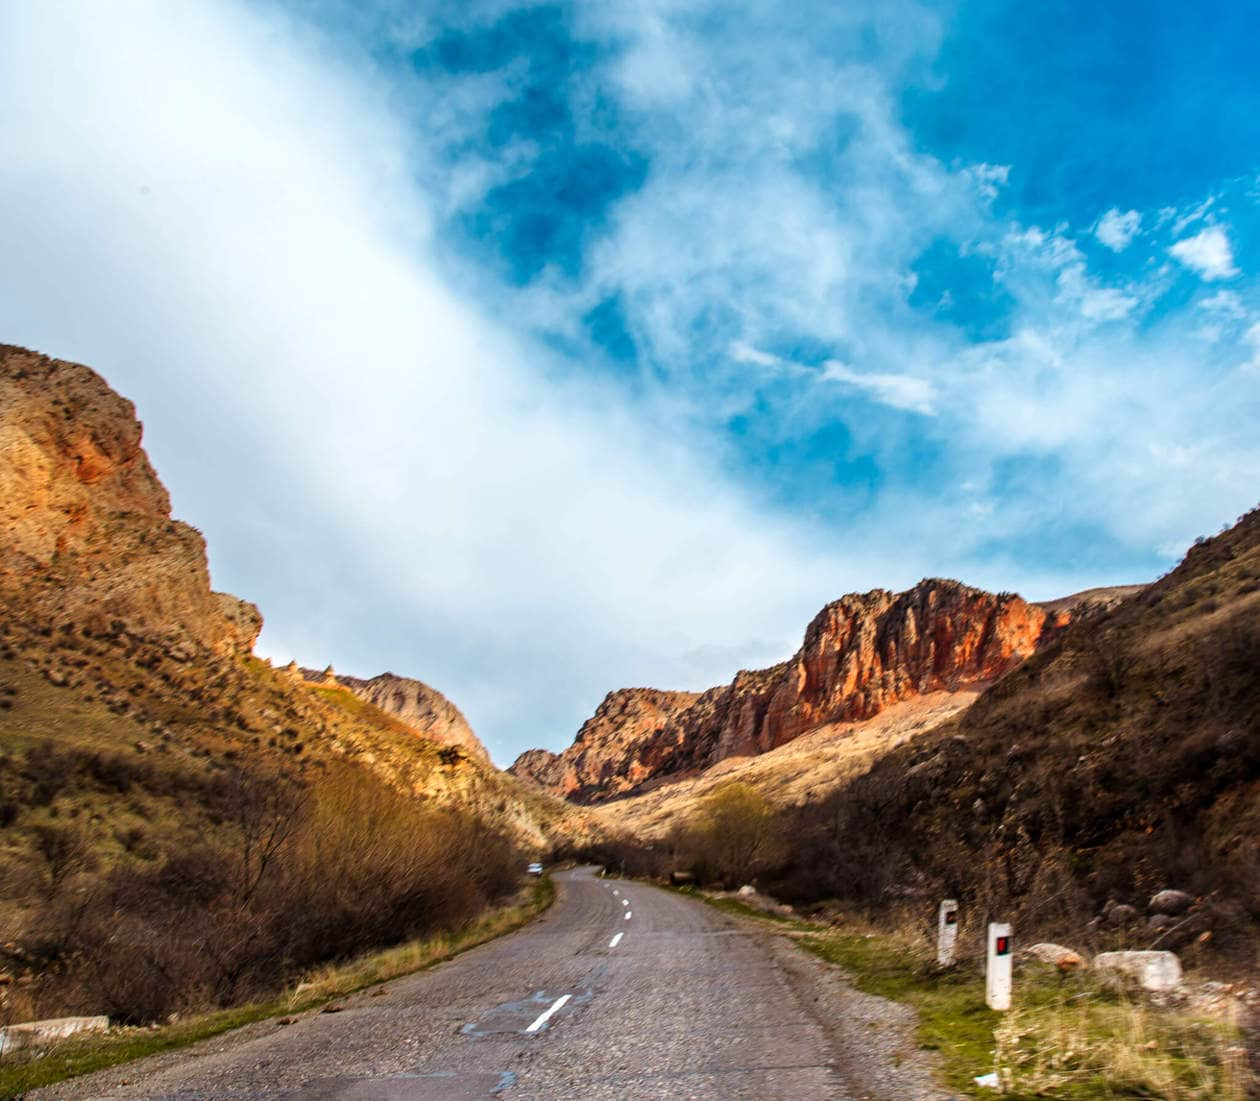 The road to Noravank Monastery // A Must Visit Religious and Historical Monastery Complex situated on a cliff within a gorge created by the Amagu River. Noravank Monastery is located in Southern Armenia near Areni (on the way to Jermuk).